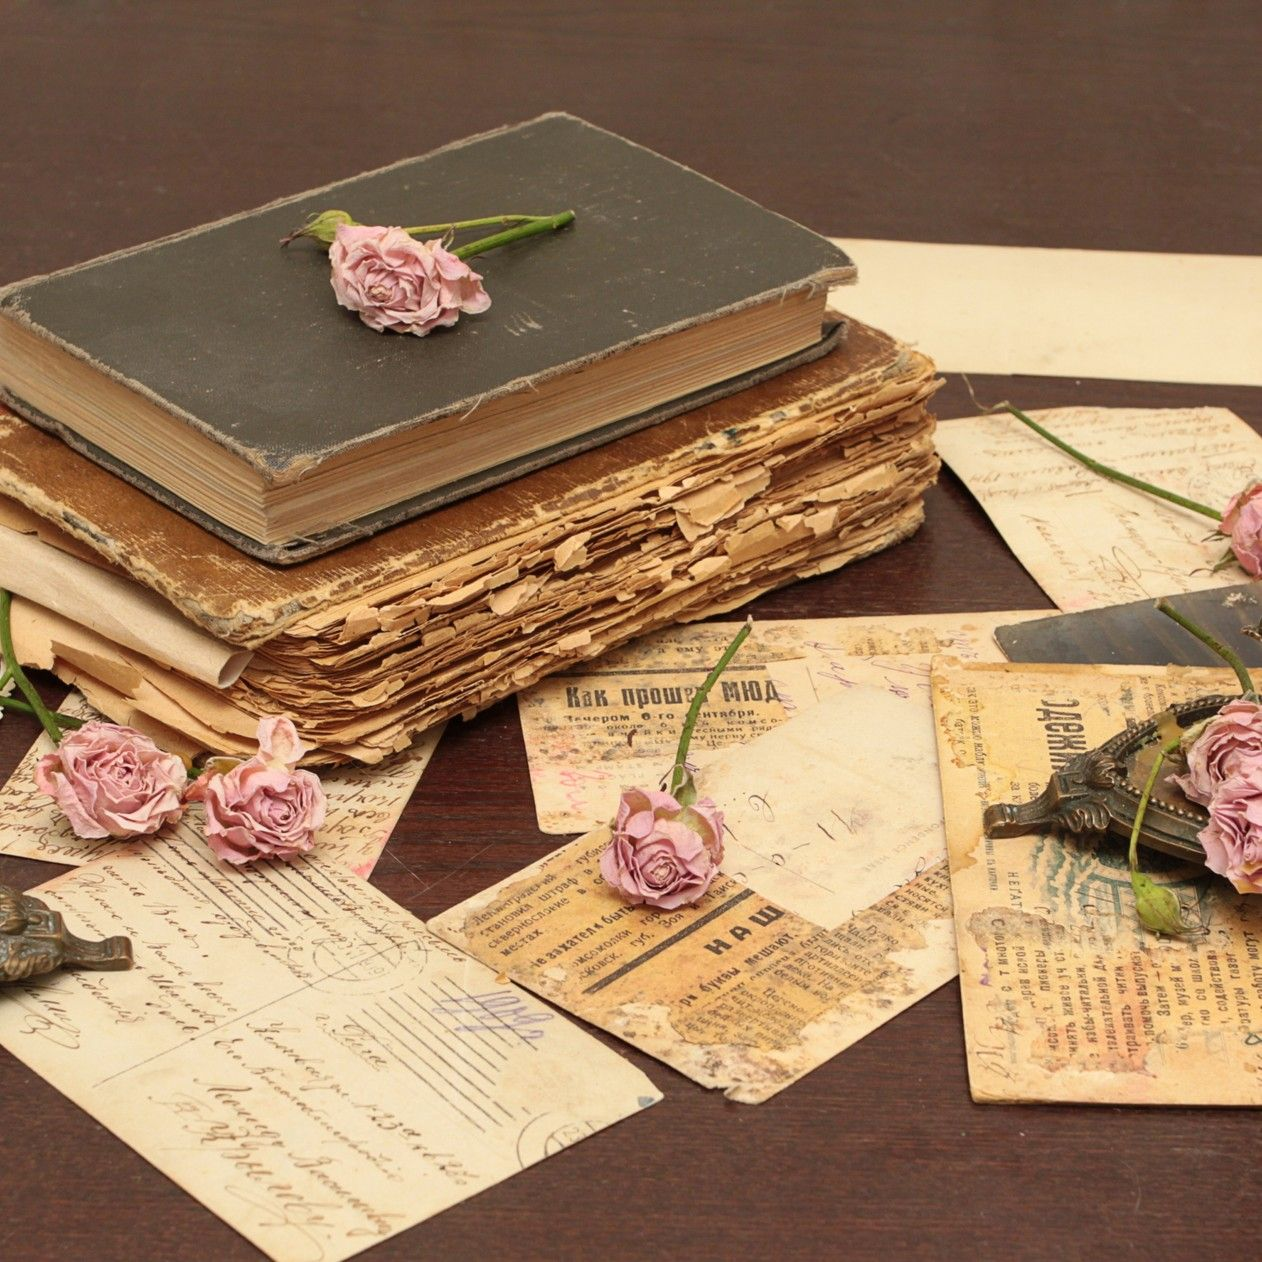 A Old Book Two Candles And Pink Roses Vintage Wallpaper 1262x1262 Download Vintage Wallpaper Book Wallpaper Antique Books